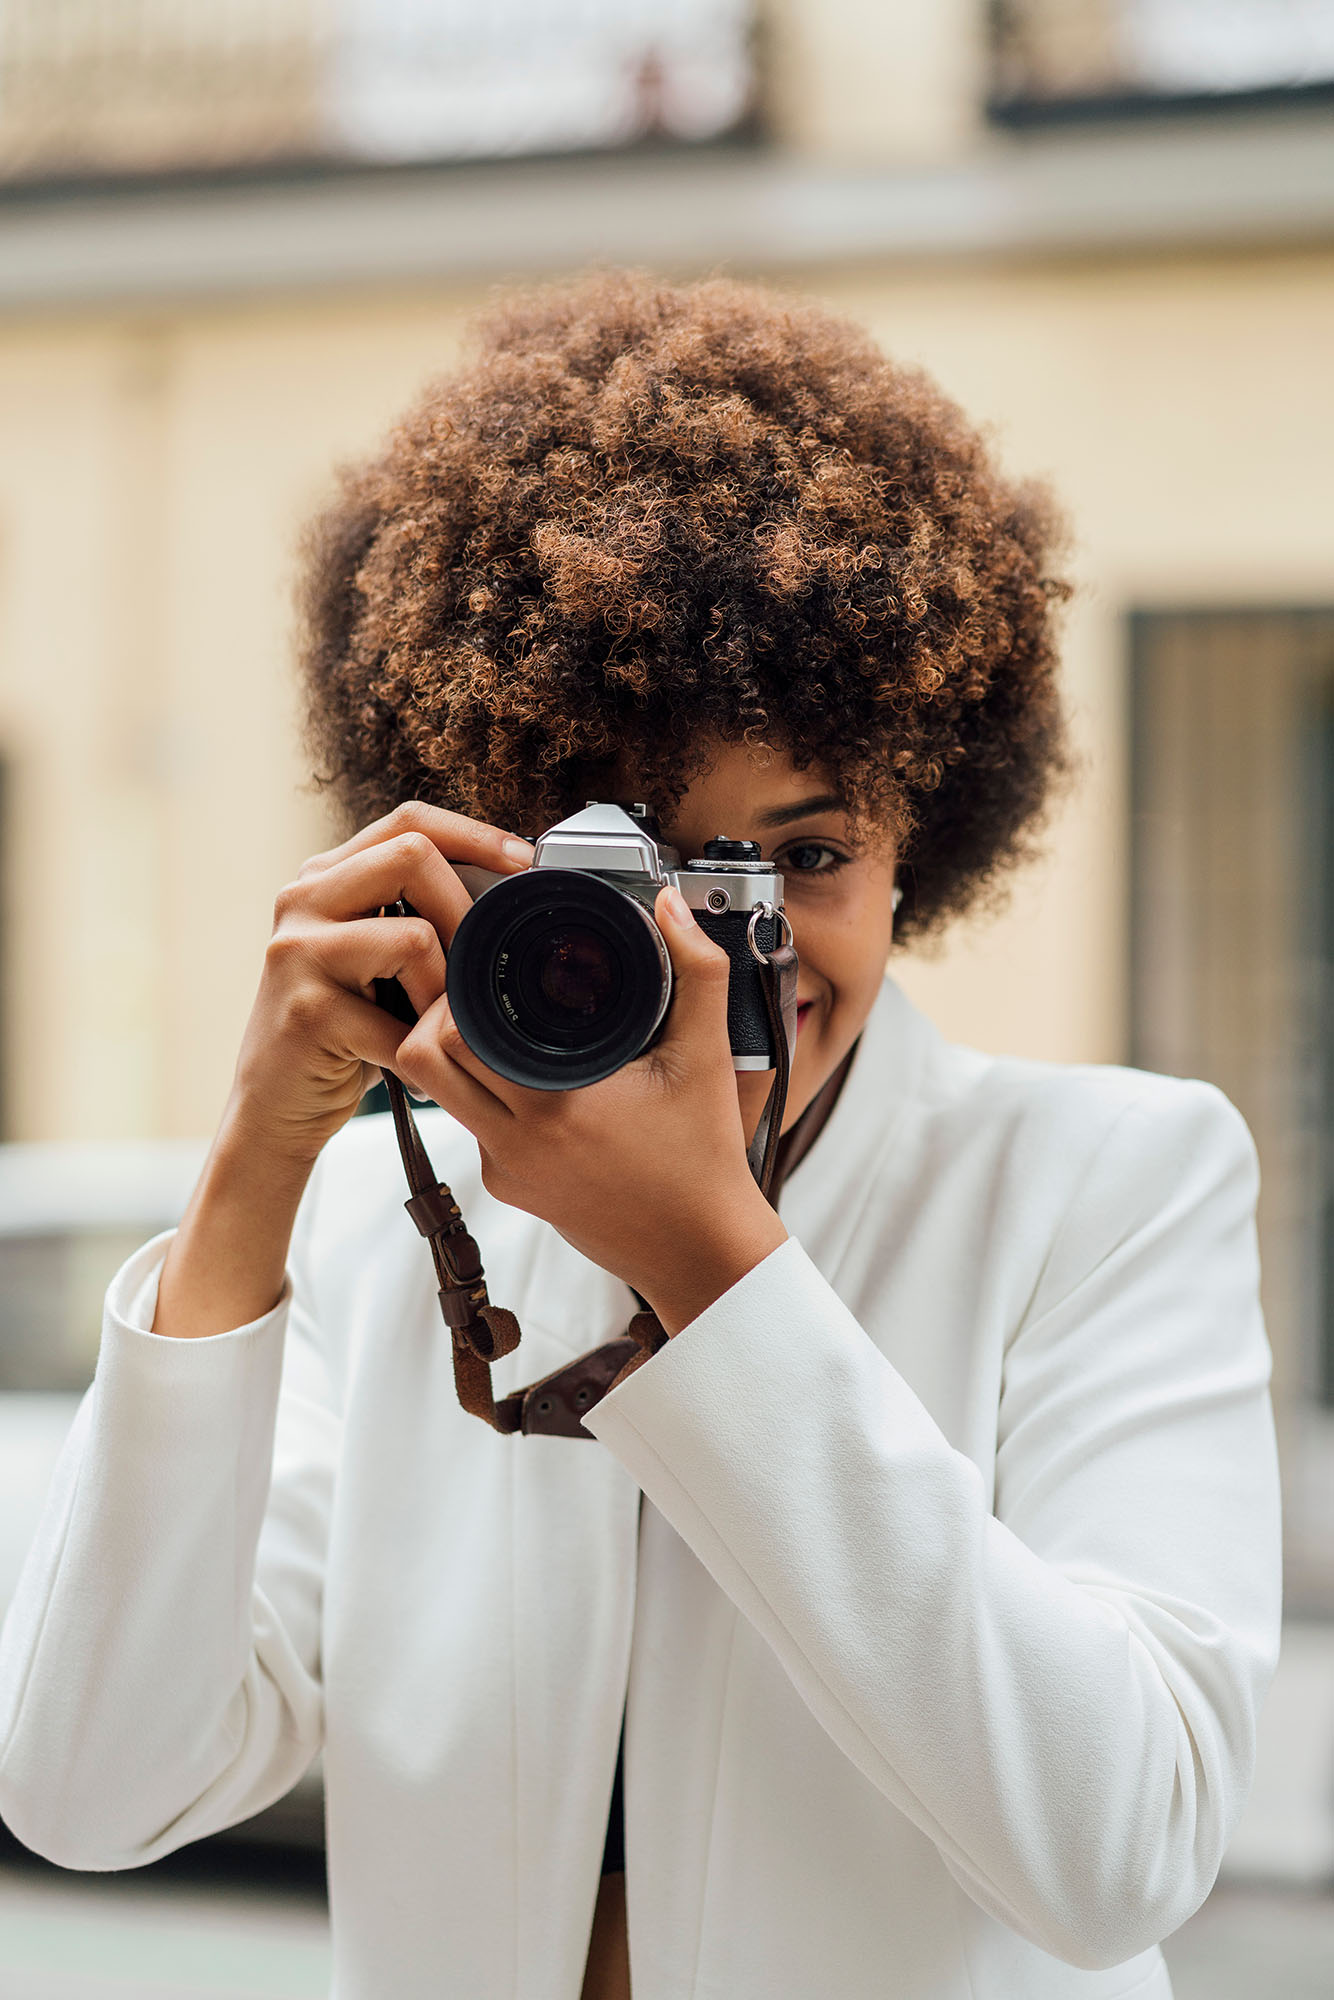 street photography portrait city people camera subject light how to tutorial guide lady with camera lens